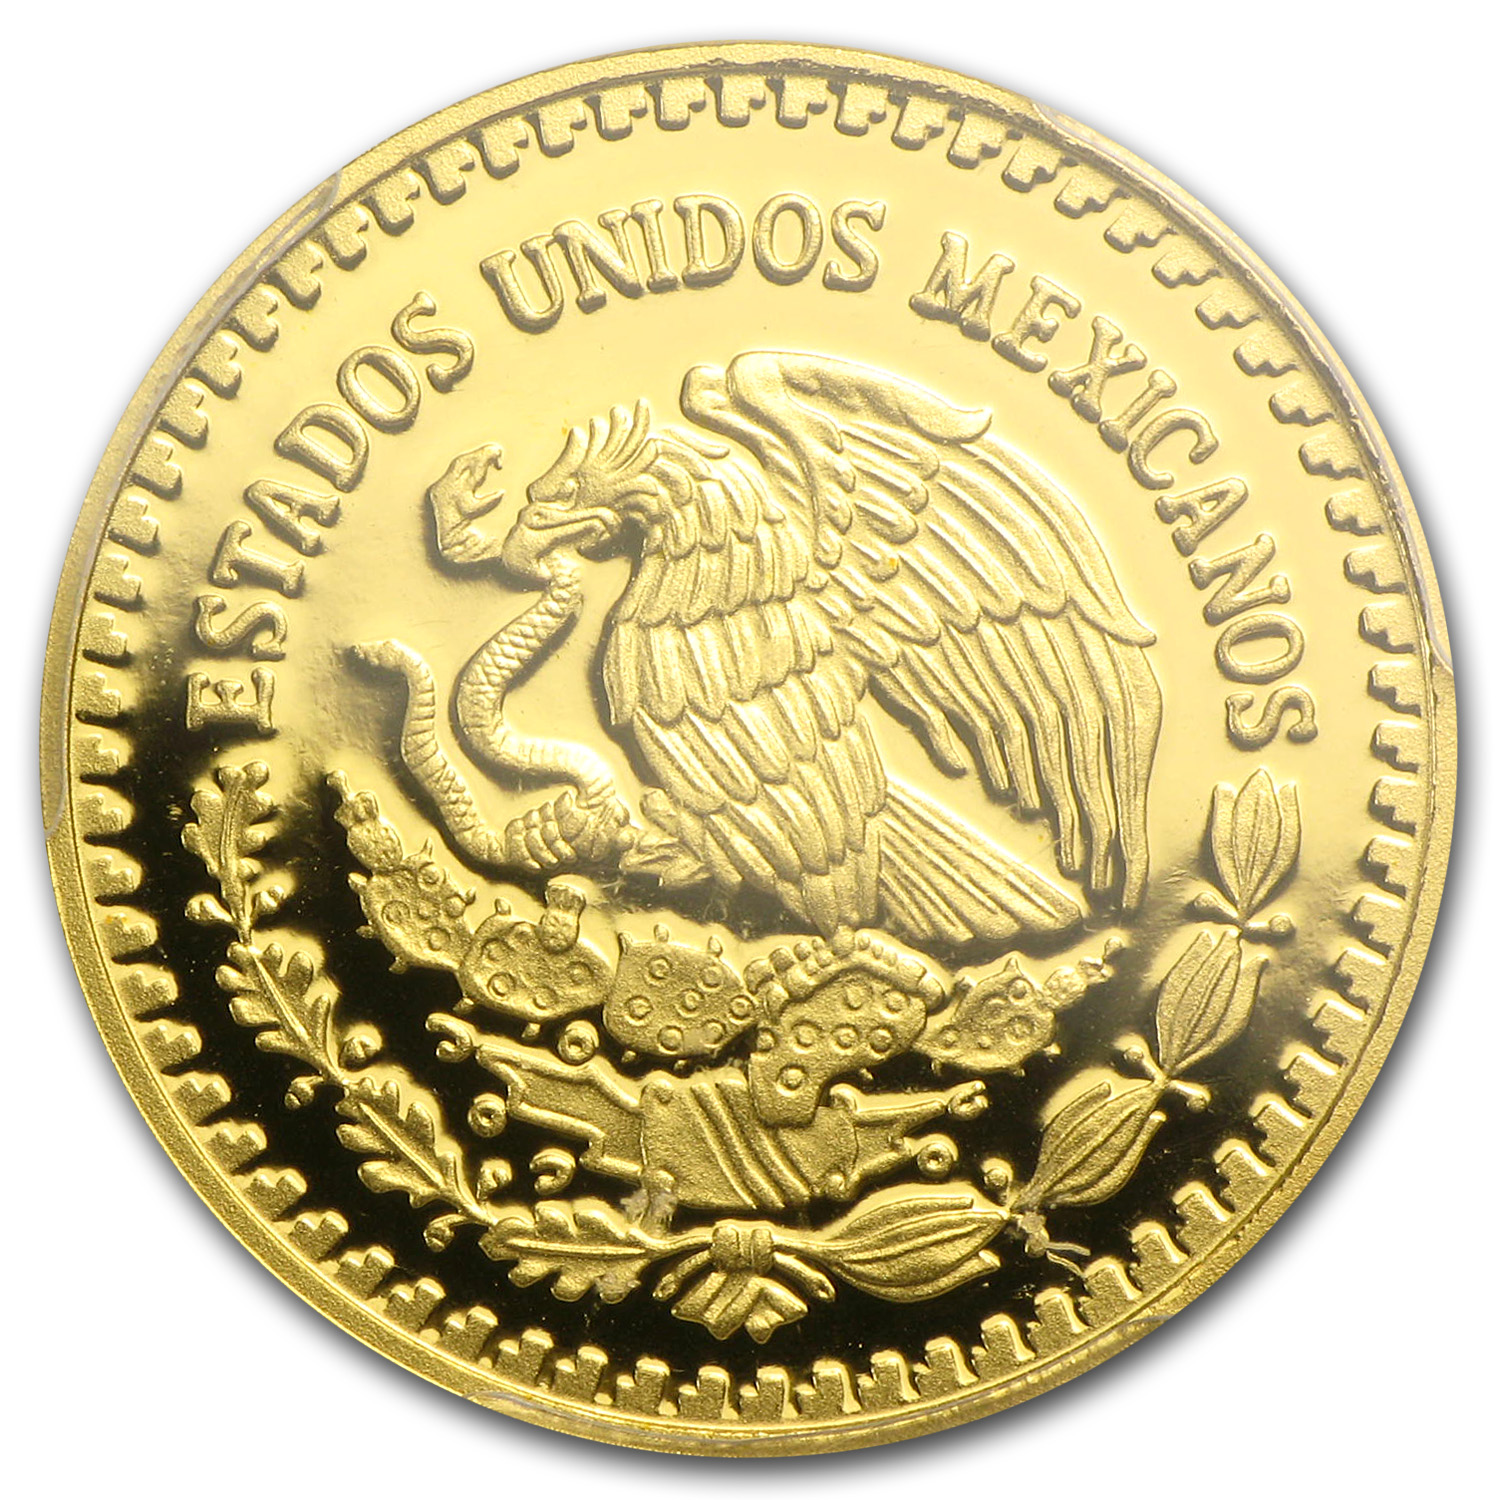 2014 1/4 oz Gold Mexican Libertad PR-70 PCGS (Registry Coin)